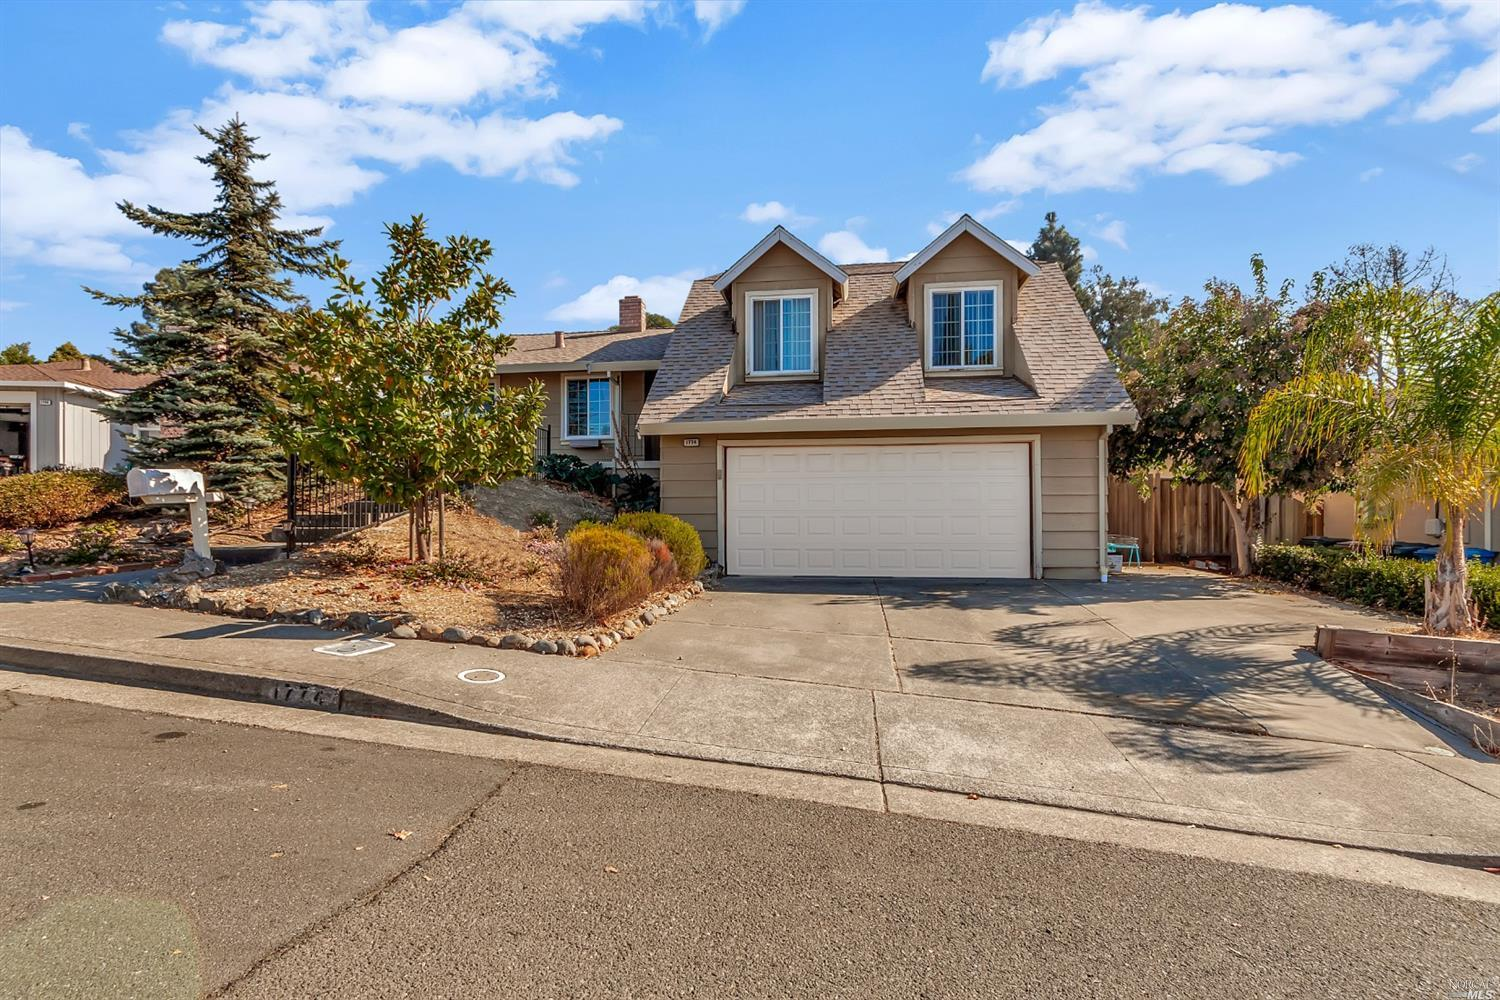 Tri-level home w/full bedroom, bath & family room downstairs | Central heat & A/C | Dual pane window